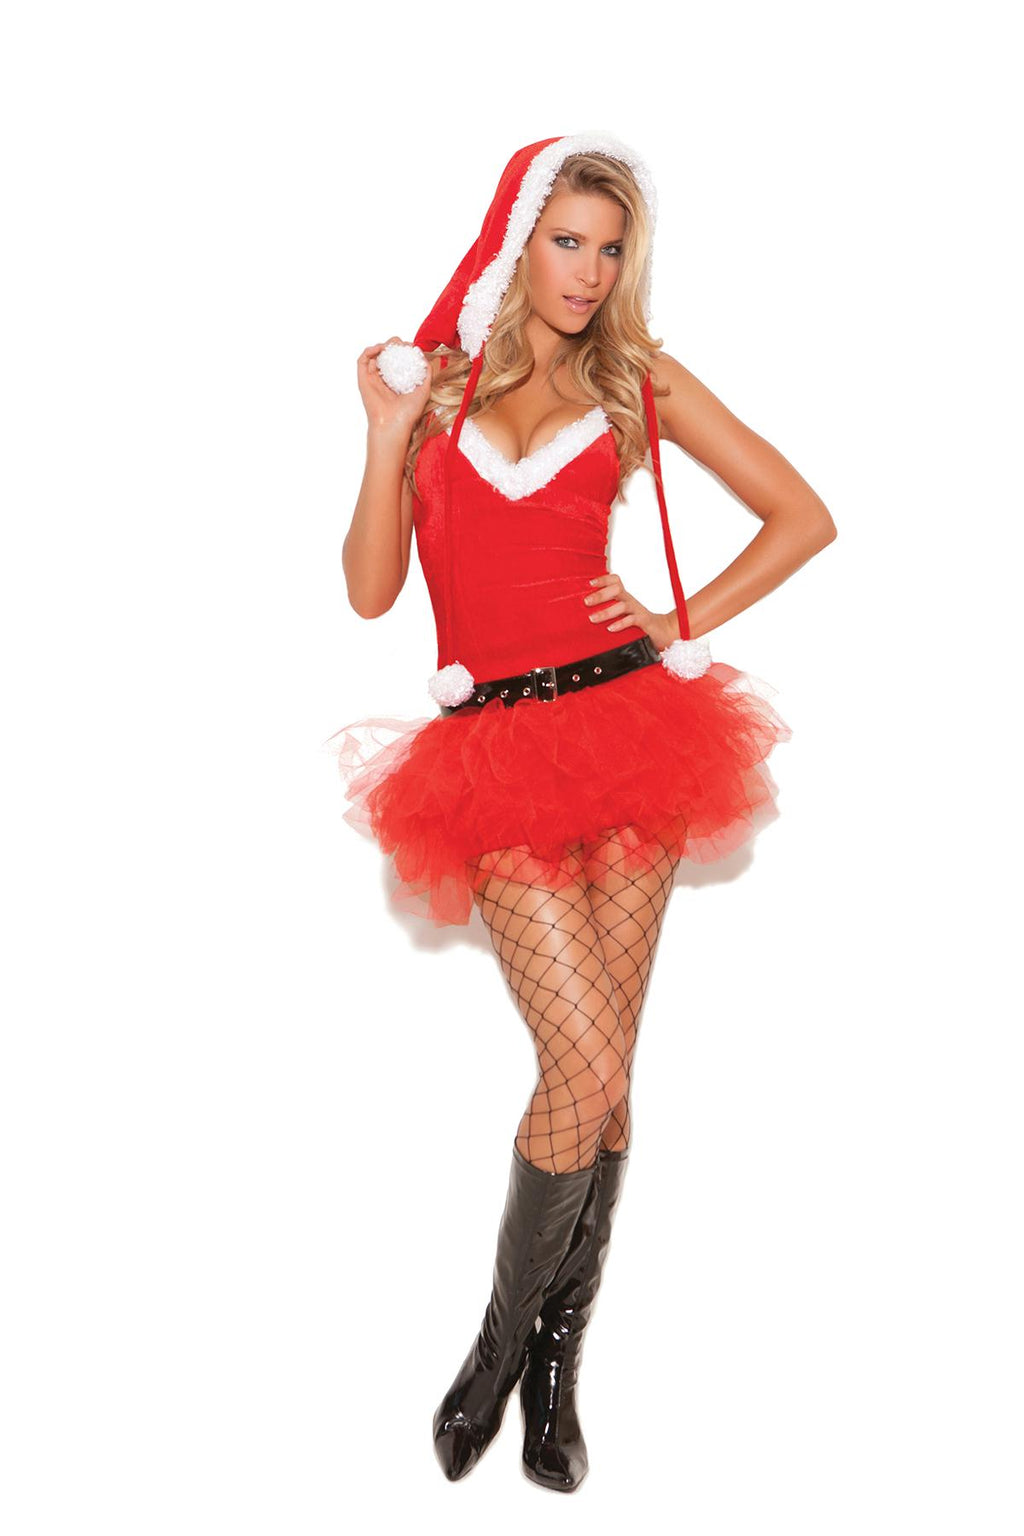 Santa's Sweetie - 3 pc. costume includes tutu dress, belt and Santa hat.